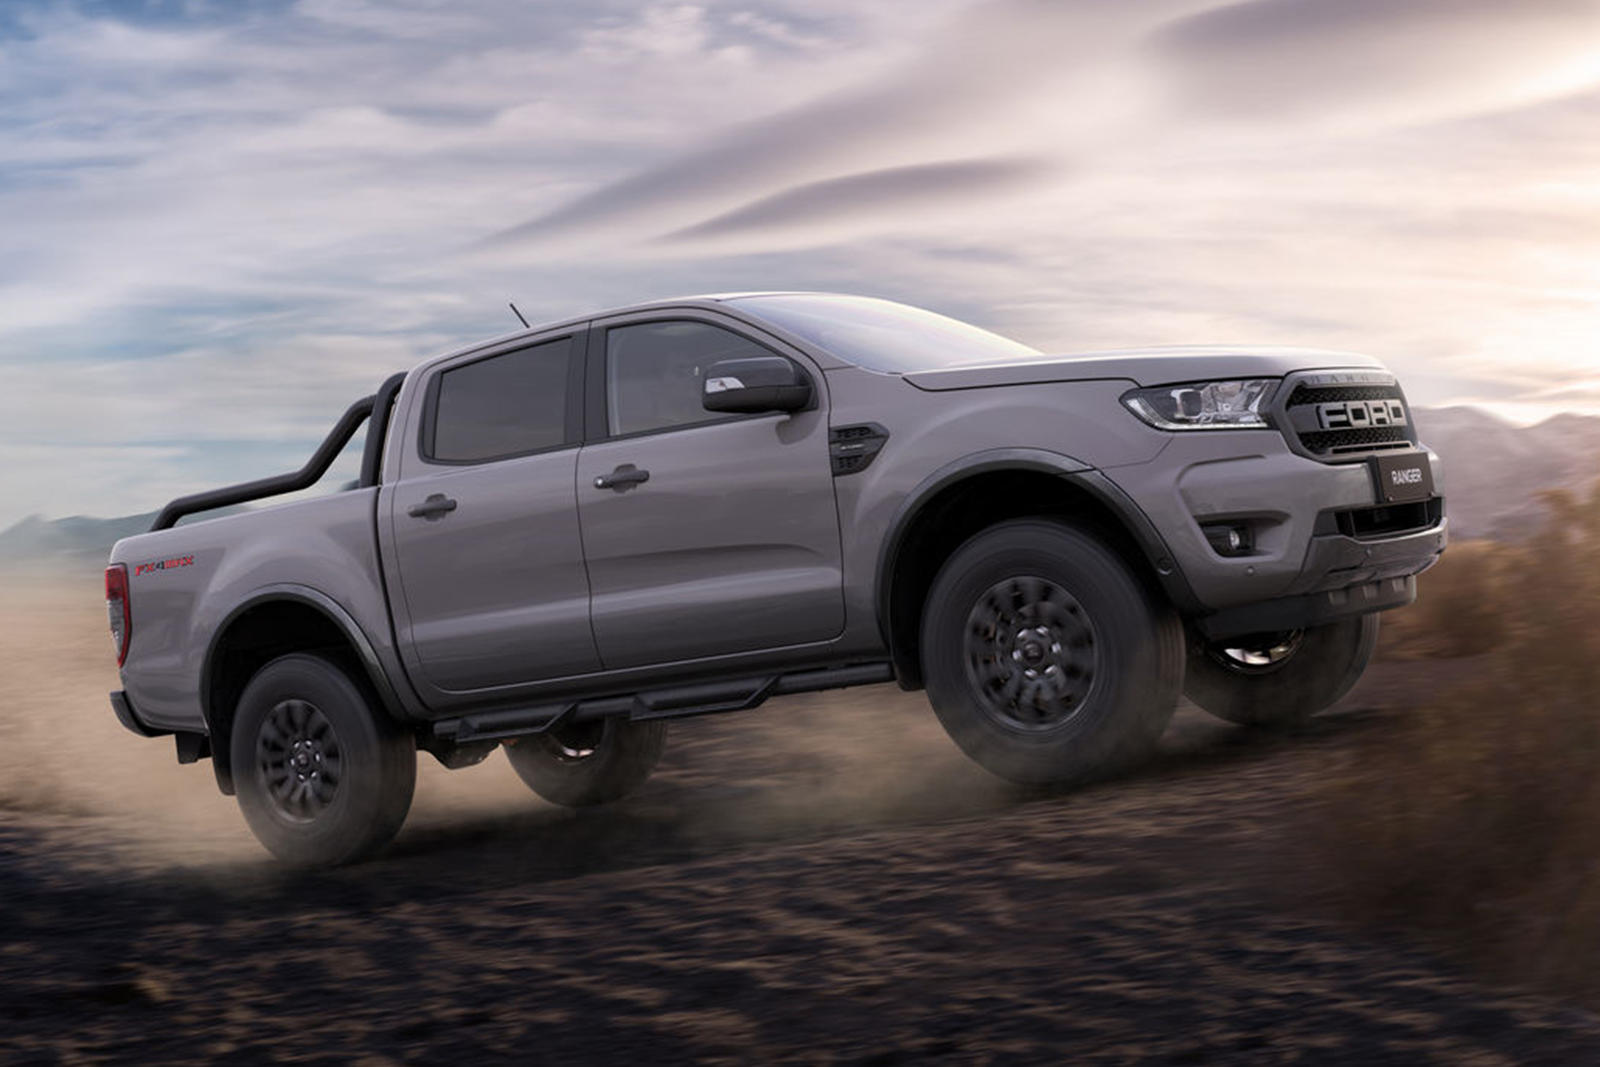 Ford Ranger FX4 MAX Is The Raptor's Baby Brother - CarBuzz